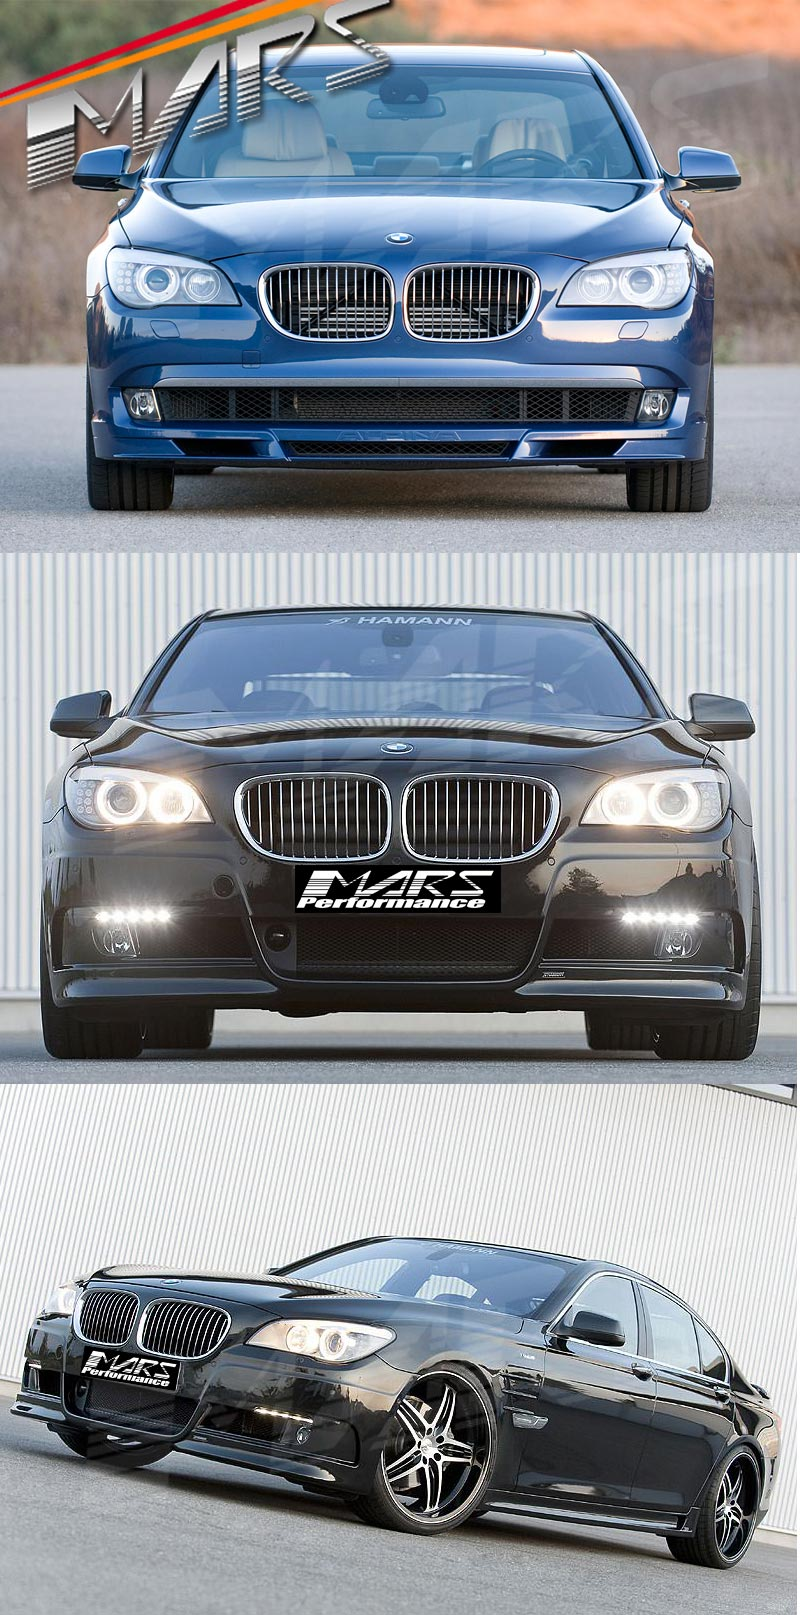 Chrome Silver Front Kidney Grille for BMW 7 Series F01 F02 ...